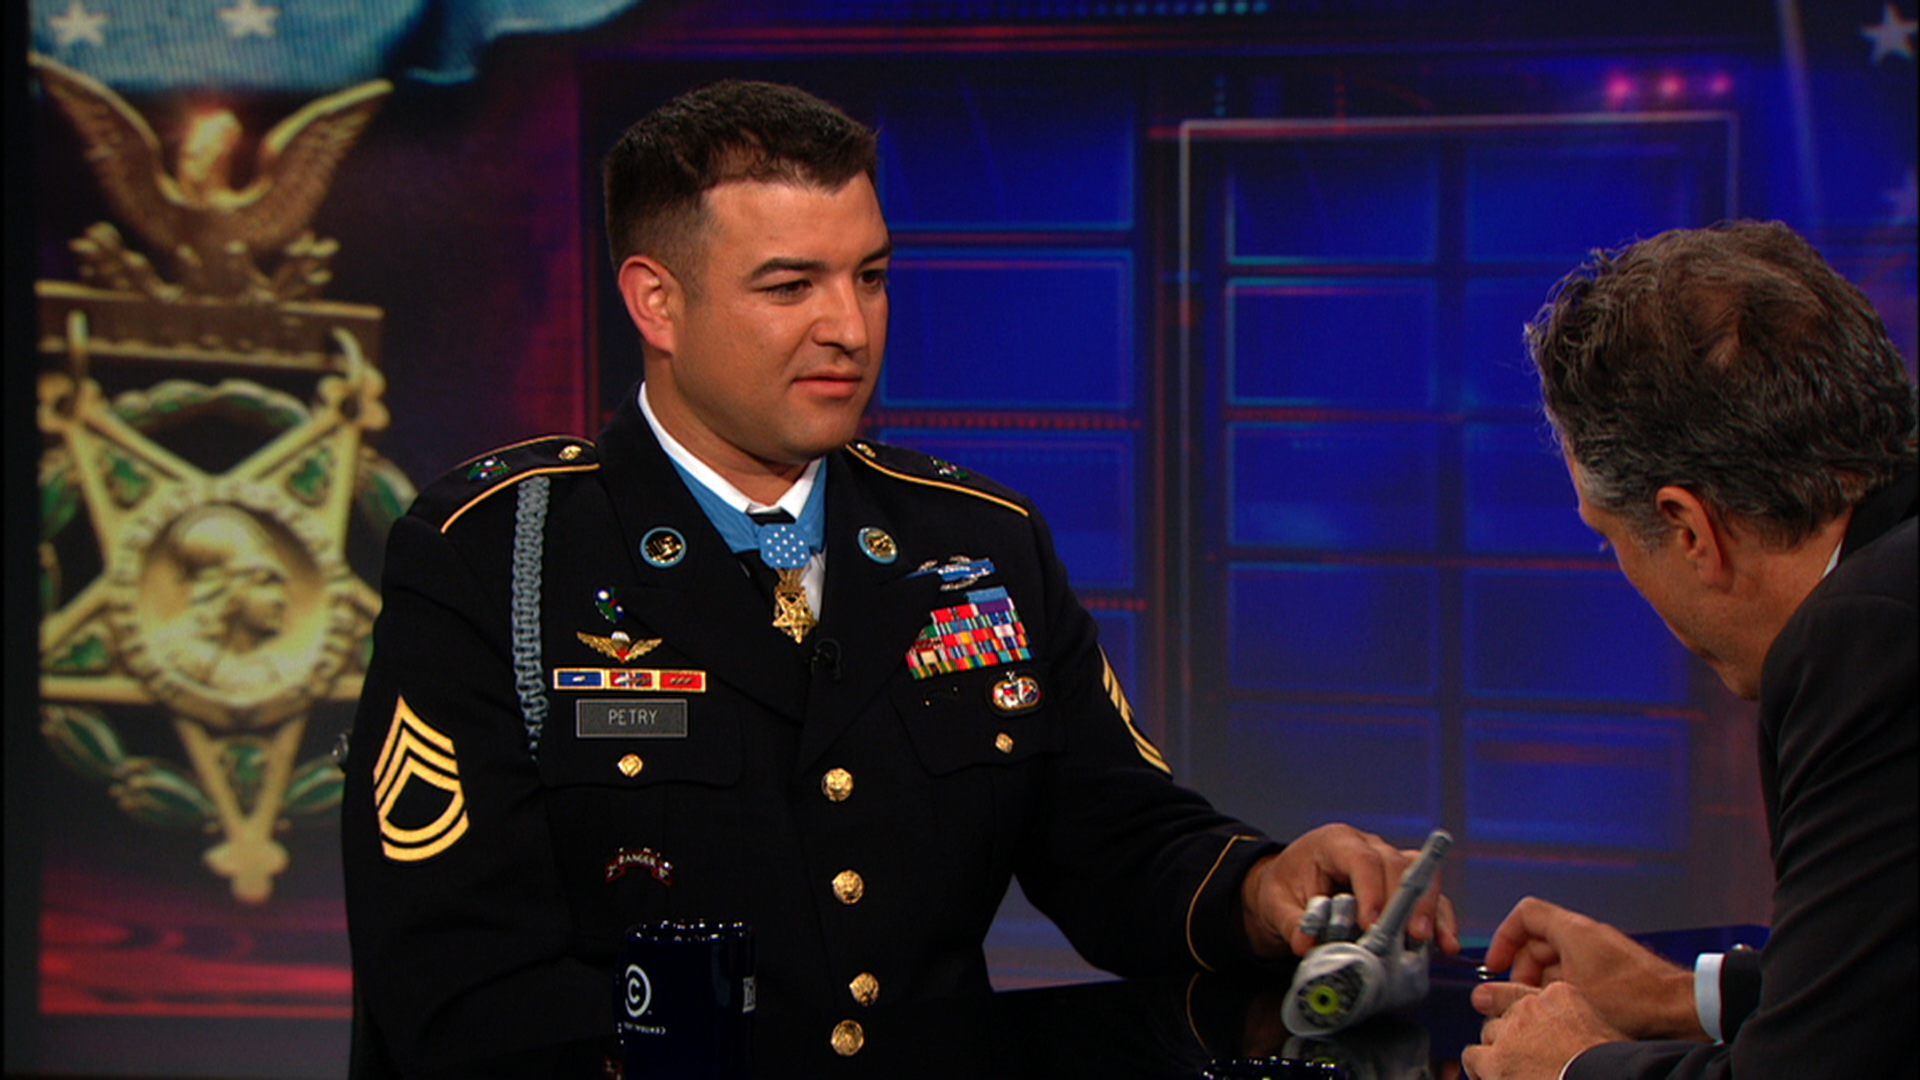 Exclusive - Leroy Petry Extended Interview Pt 2 | BahVideo.com